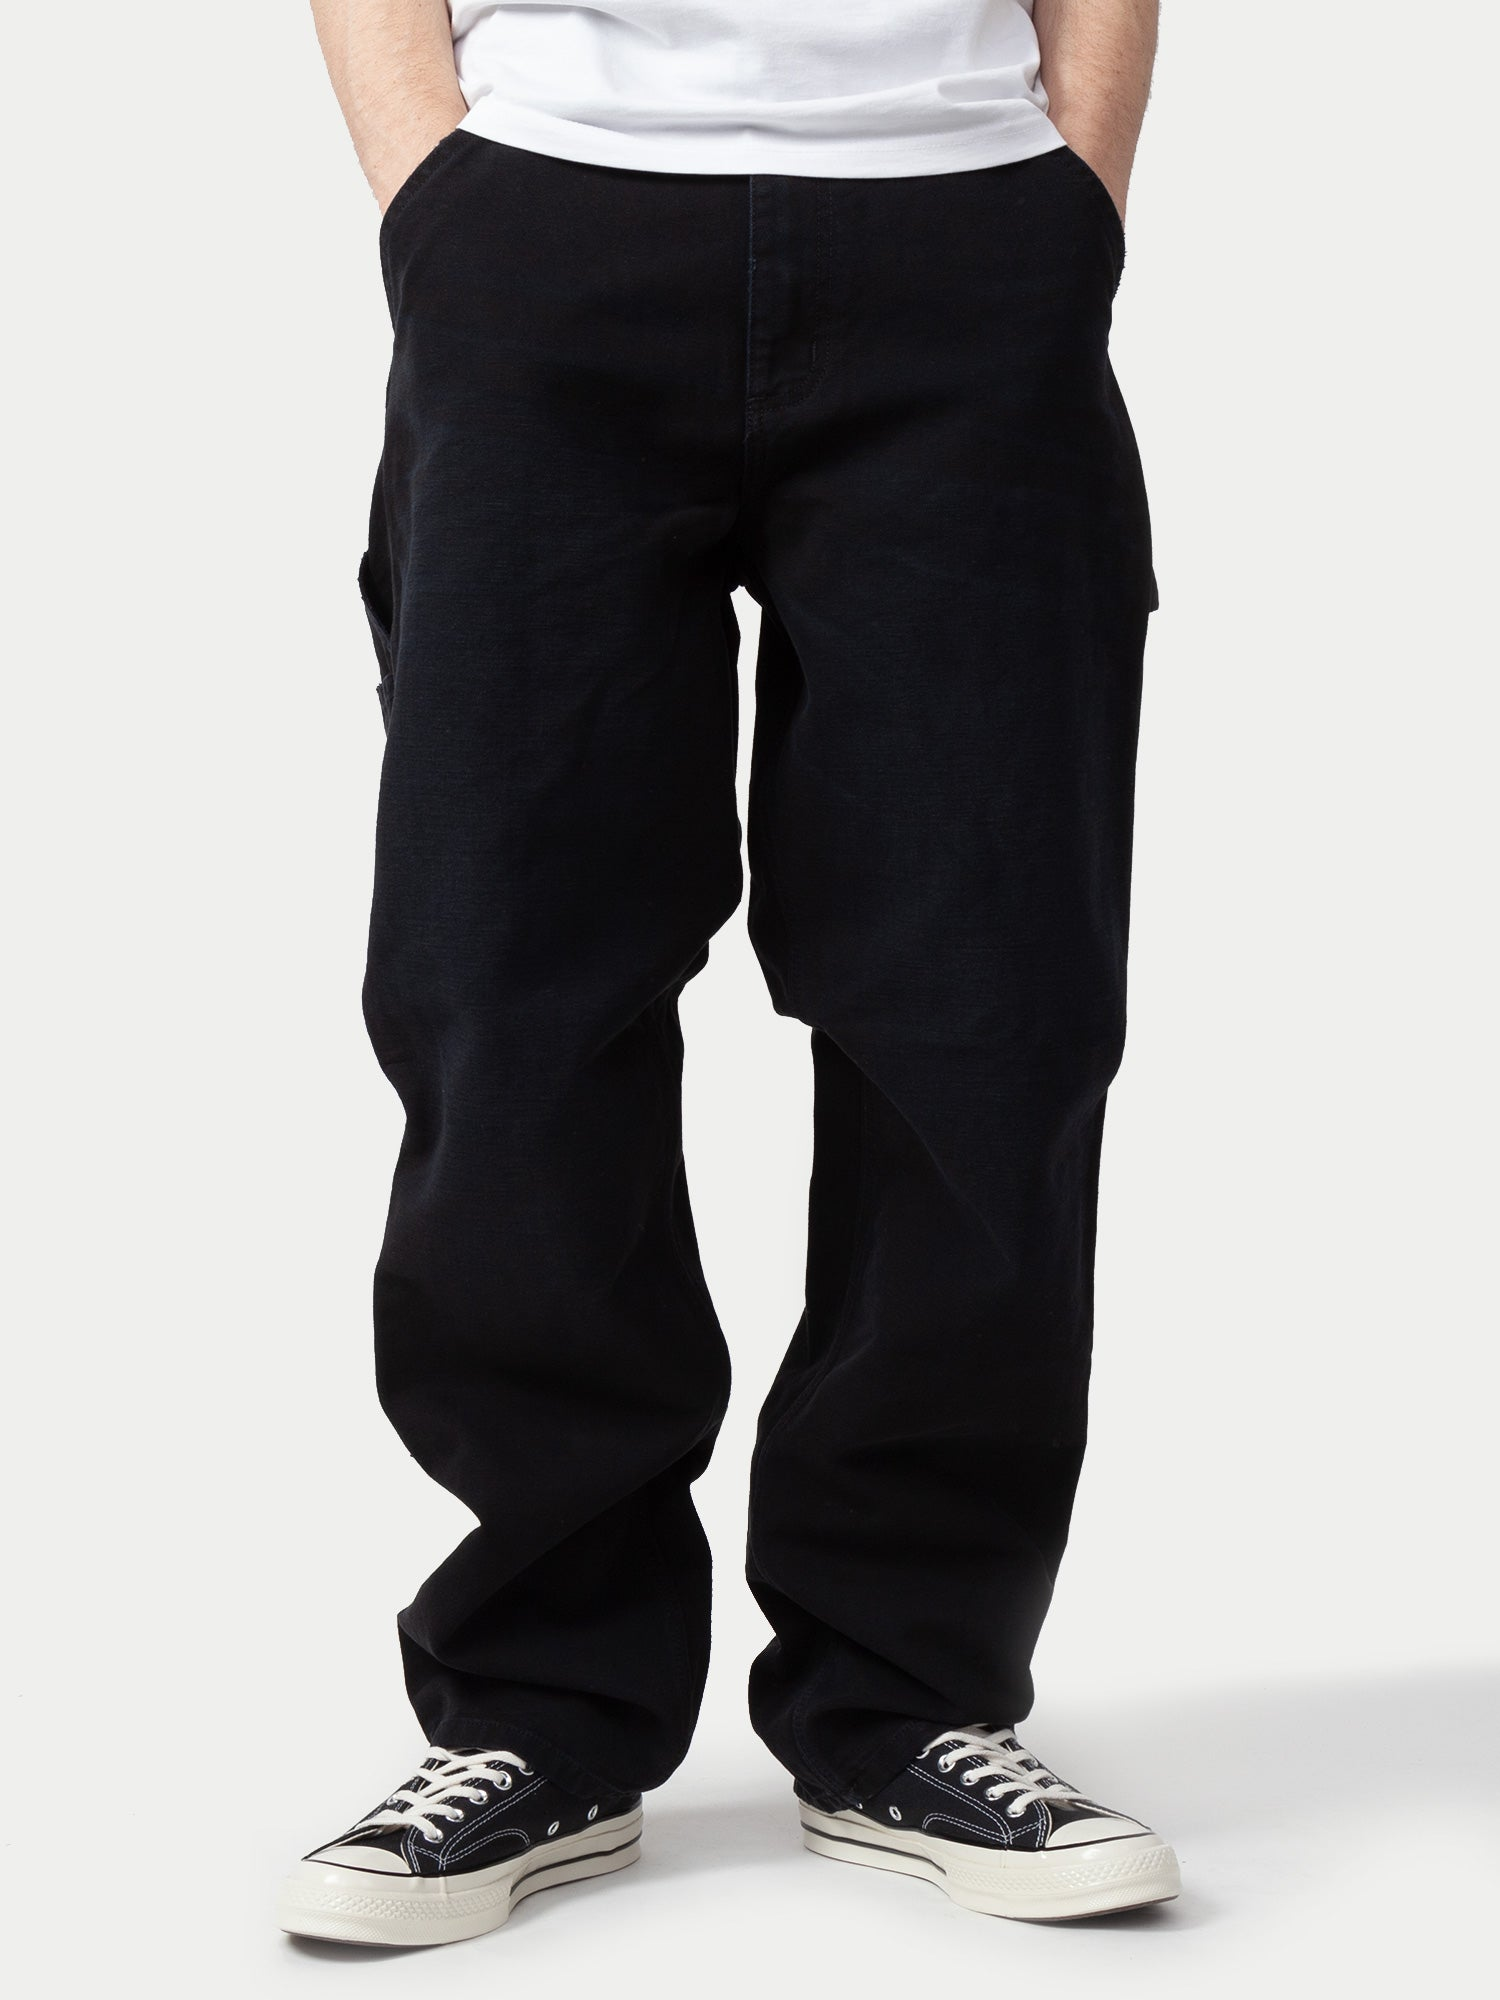 Carhartt Single Knee Pant (Black Aged Canvas) m1